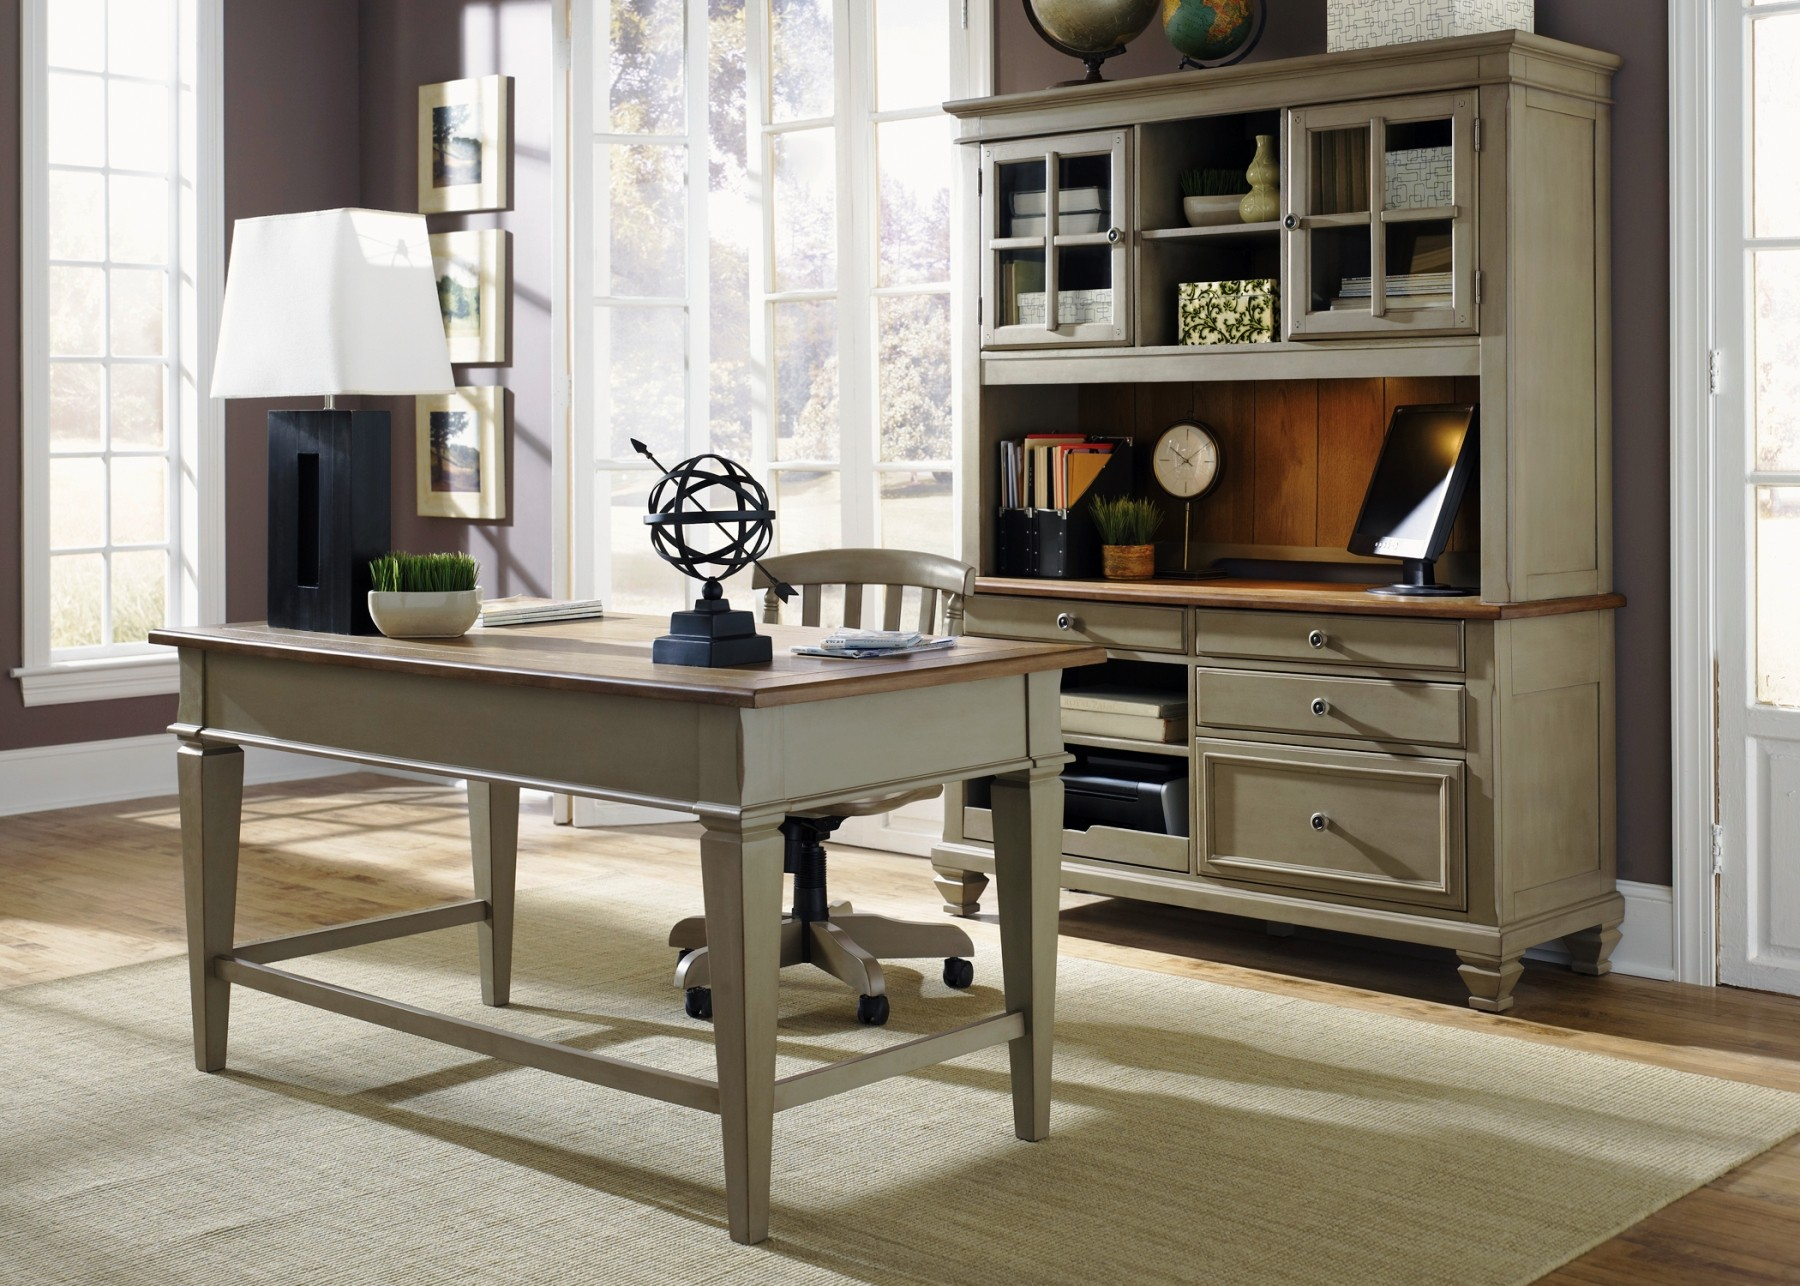 Delicieux Bungalow Taupe Jr Executive Home Office Set From Liberty (541 HO120) |  Coleman Furniture